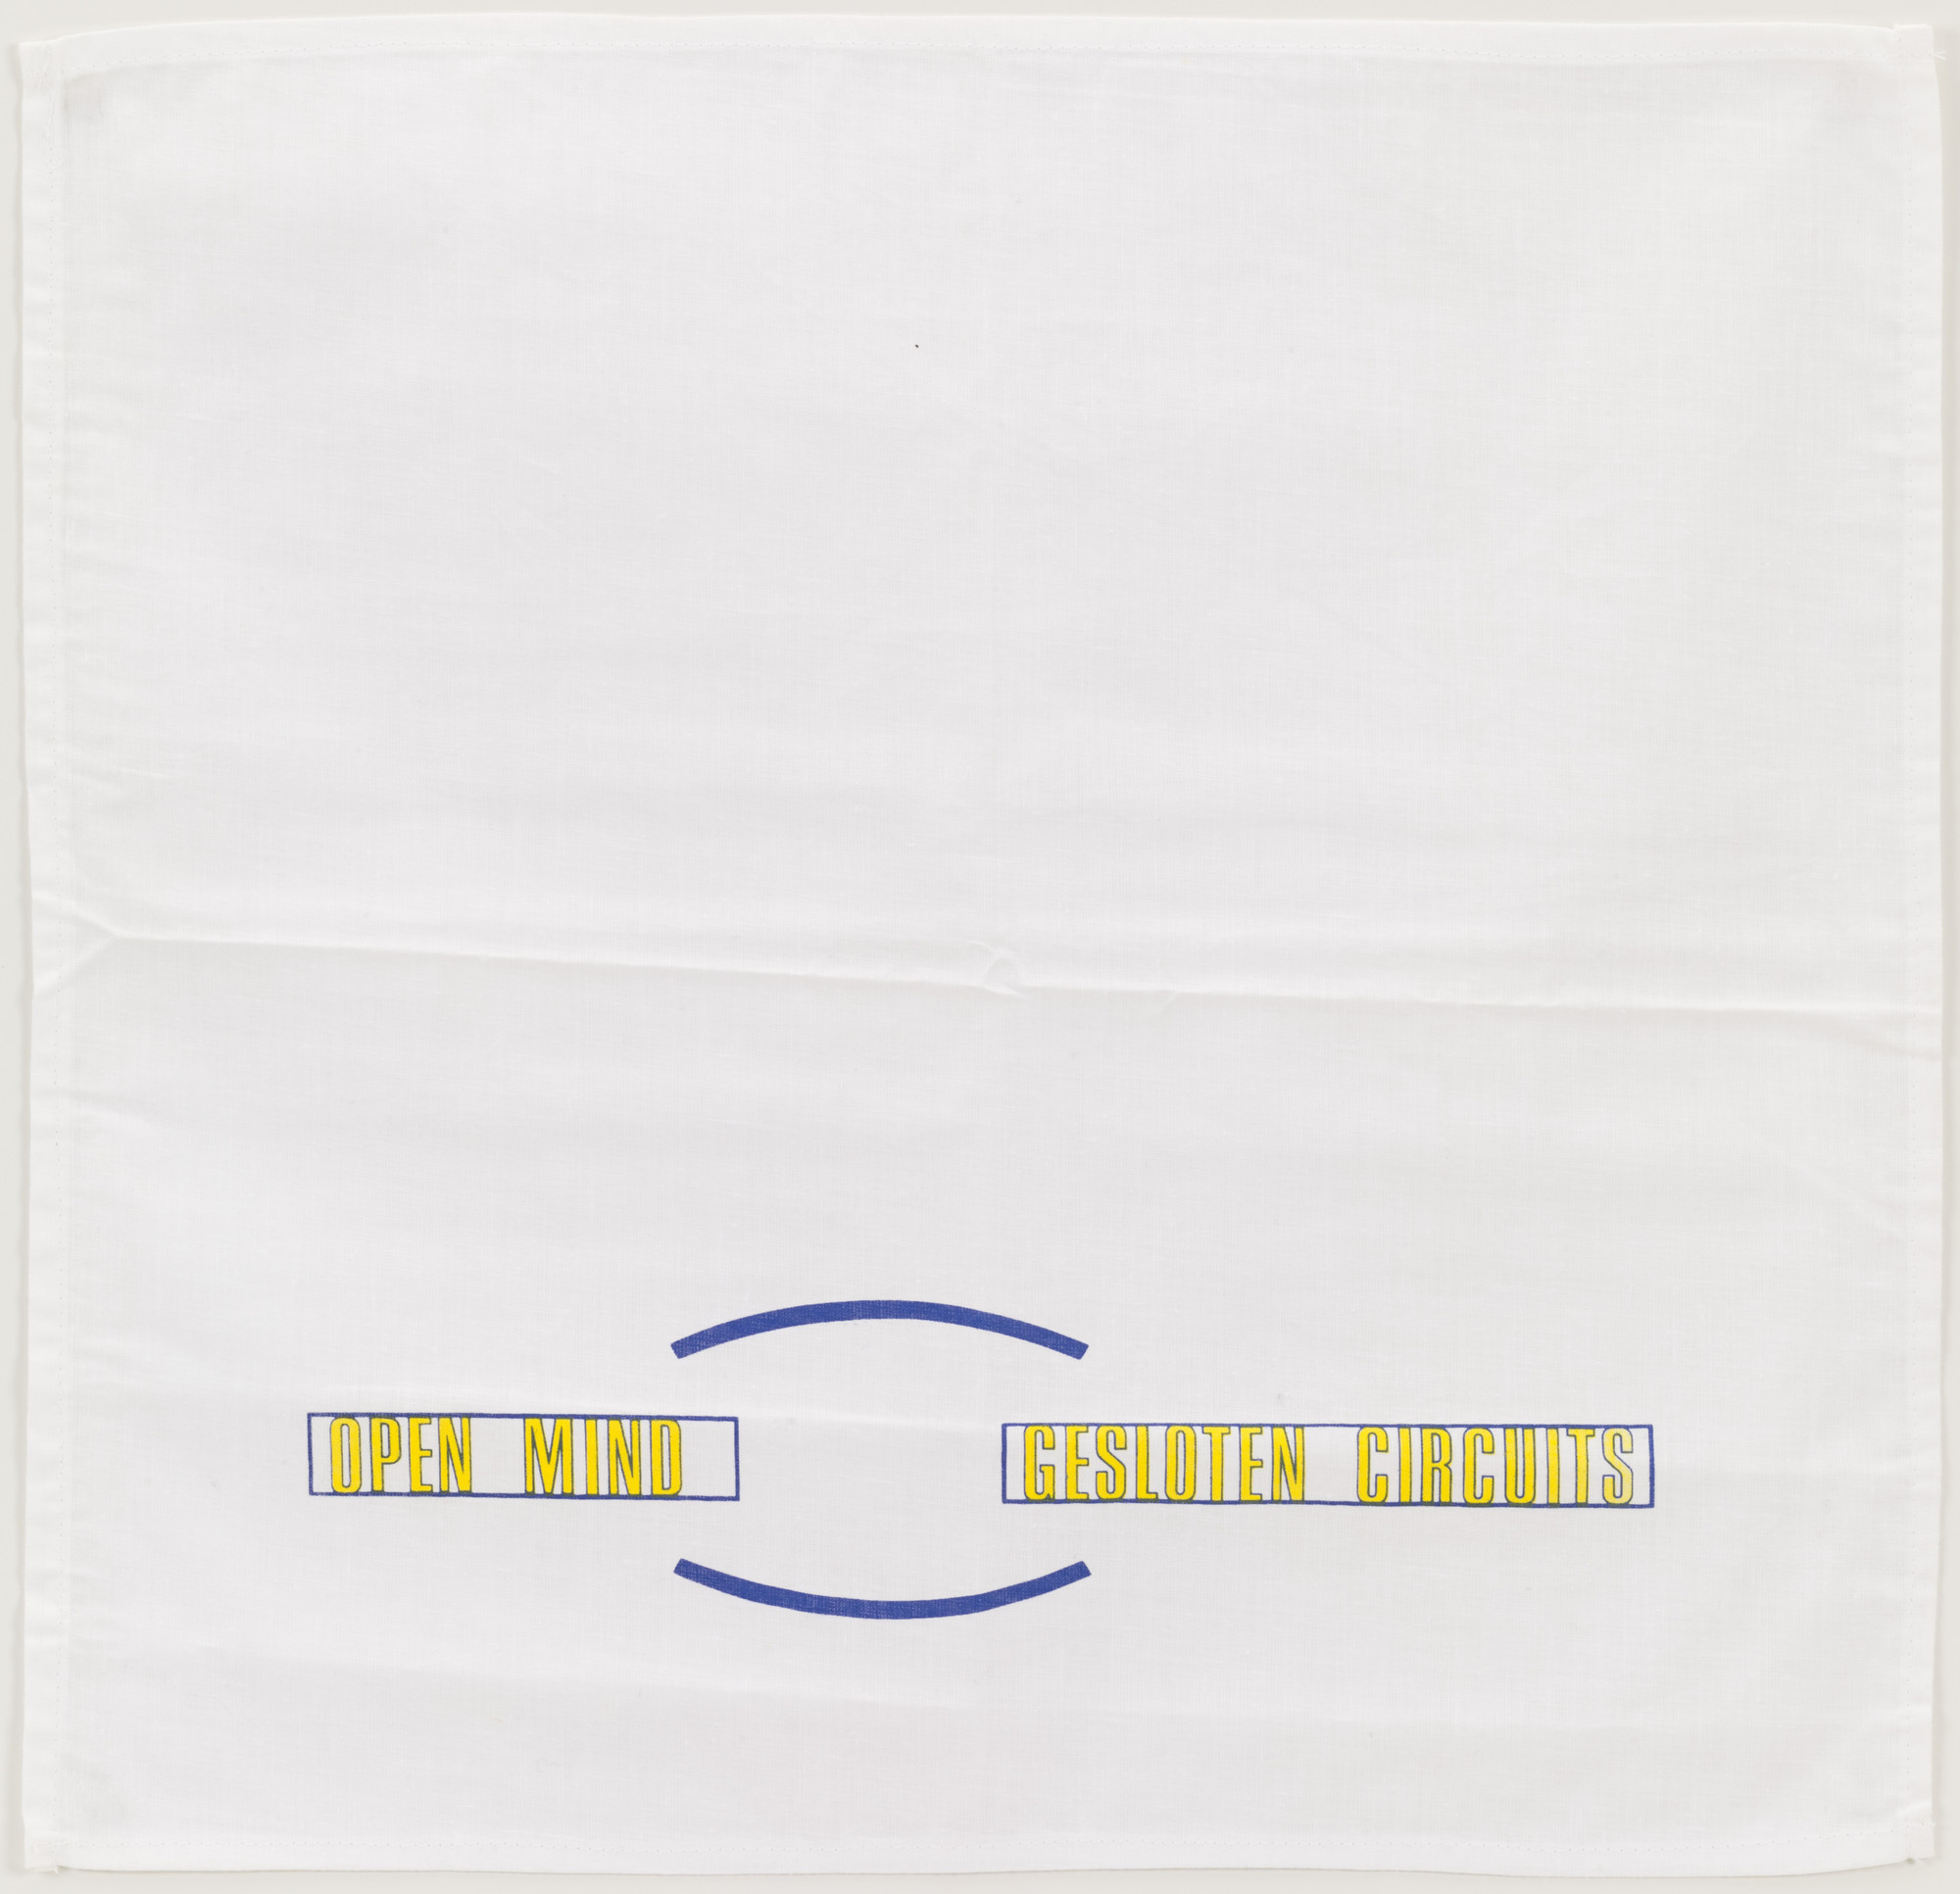 Lawrence Weiner. Open Mind/Gesloten Circuits. 1989